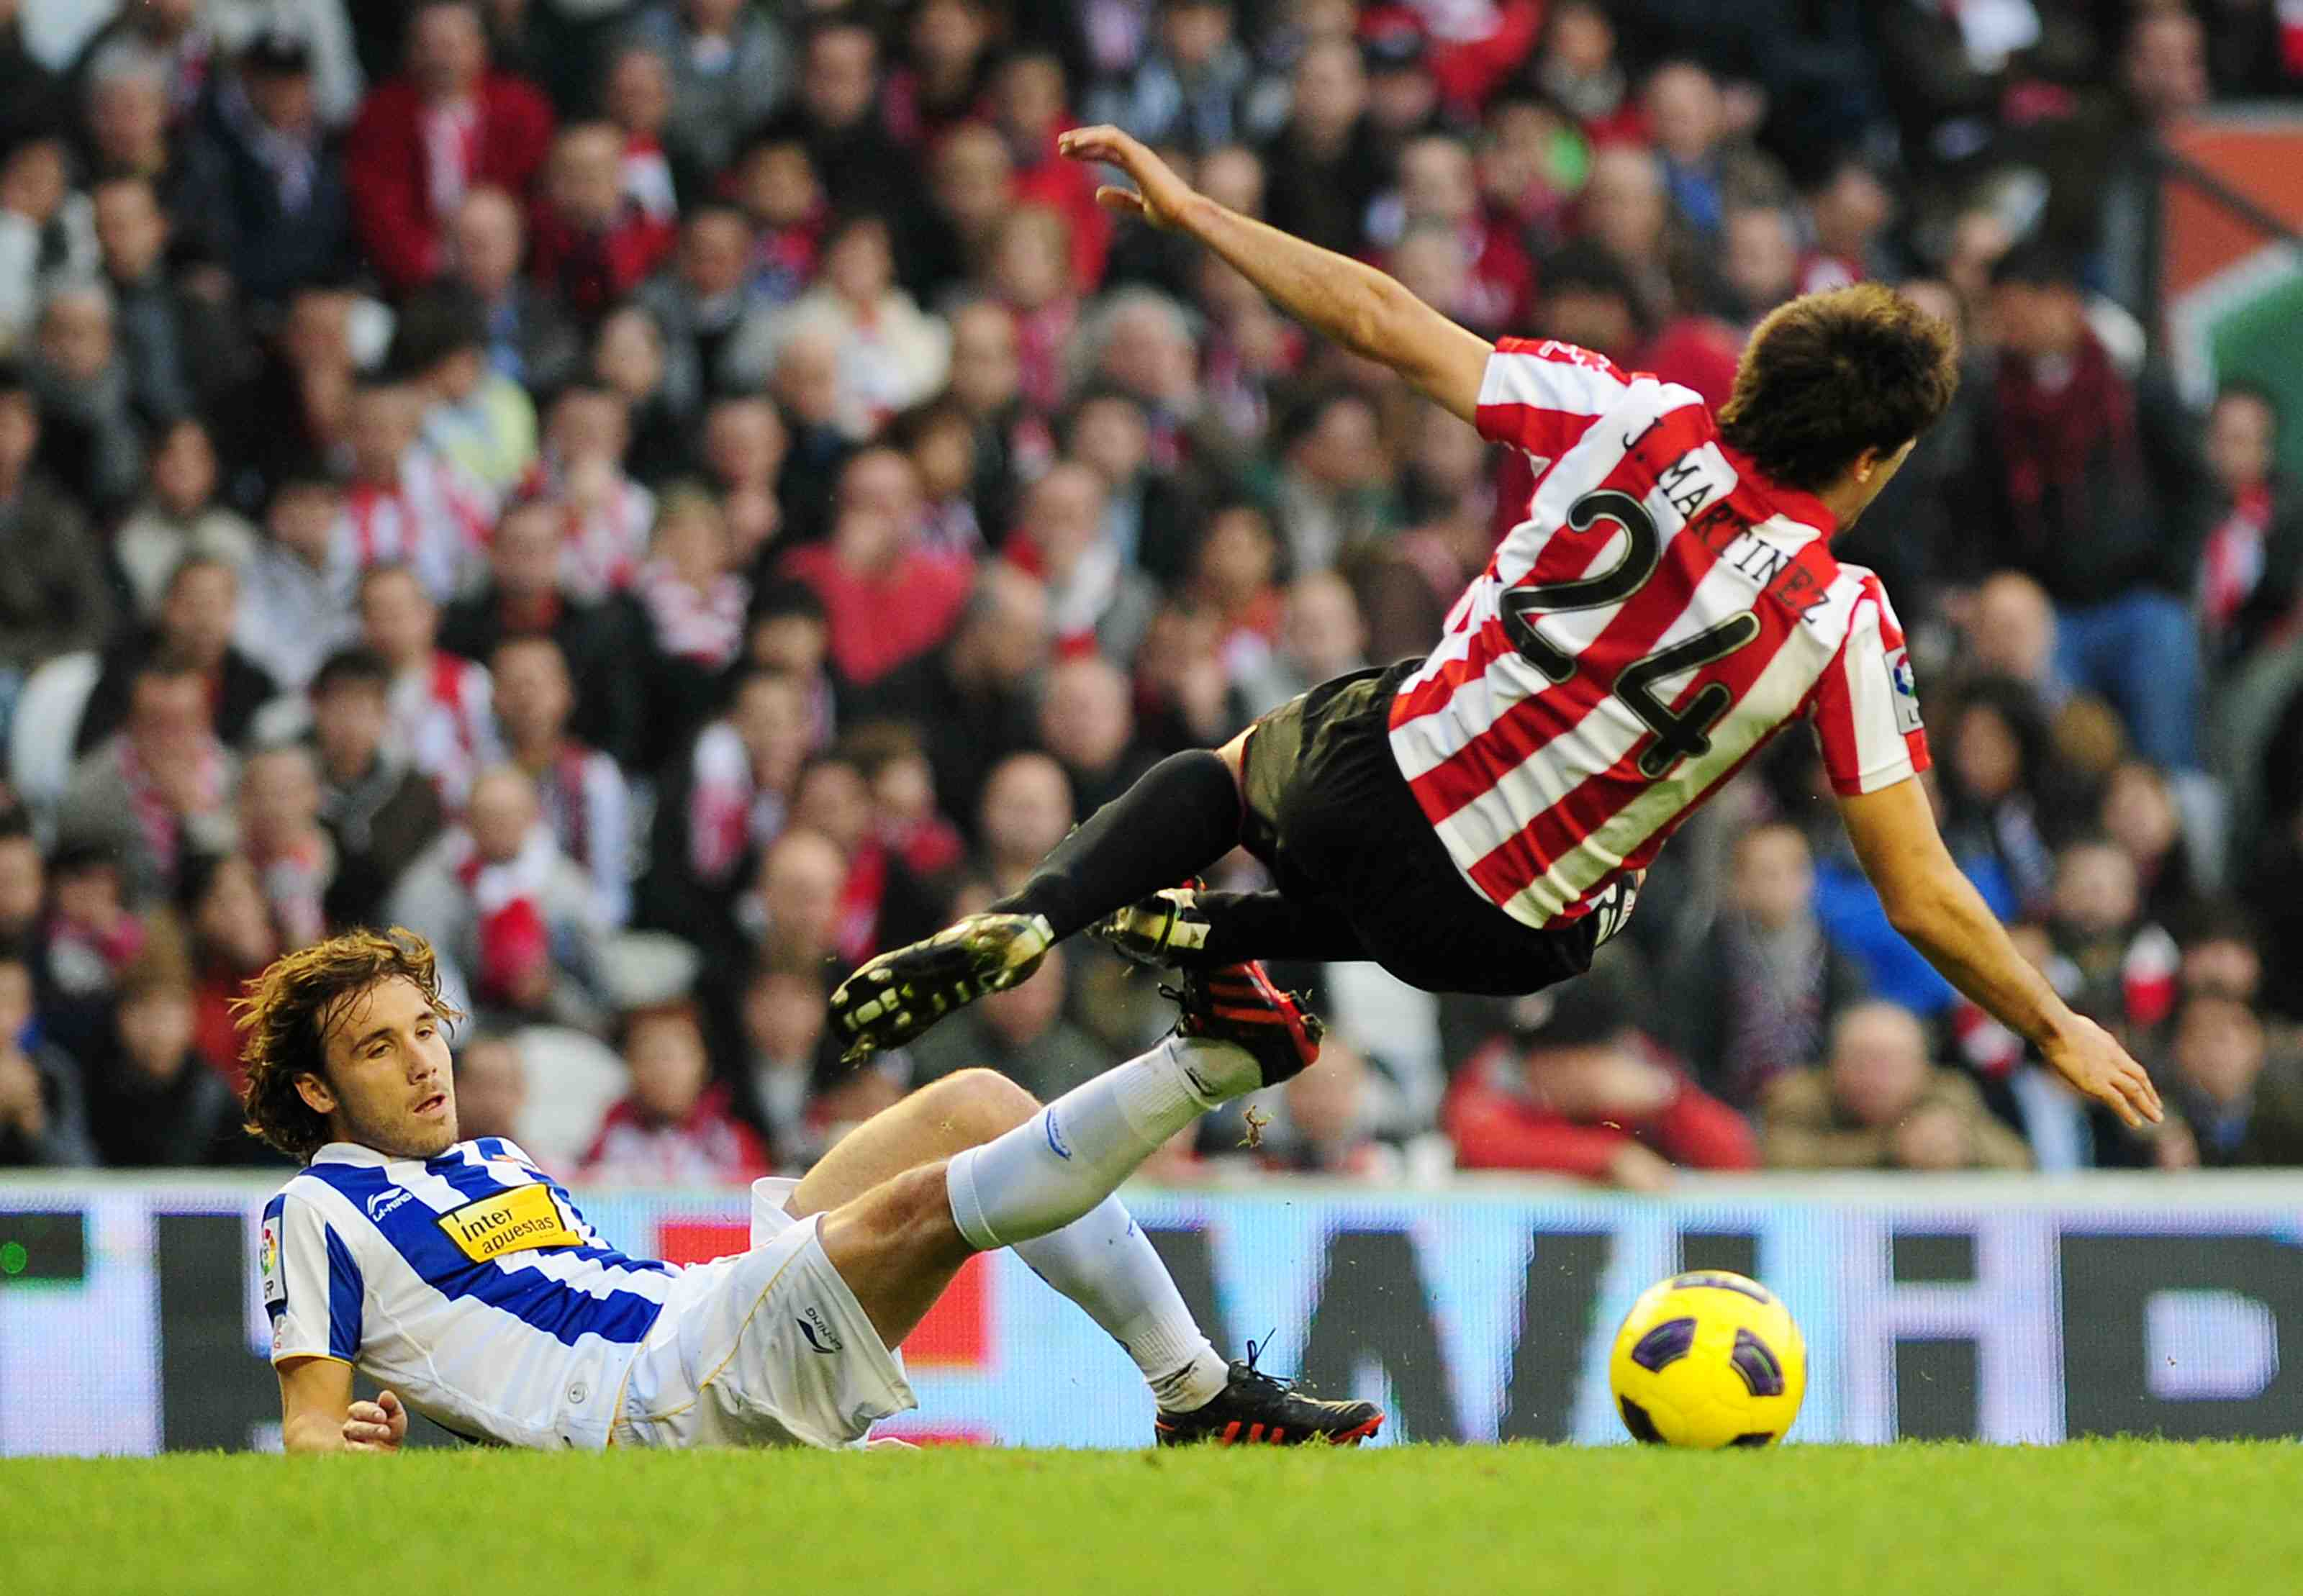 A tackle form Verdú -RCD espanyol- to Javi Martínez -Athletic Bilbao-